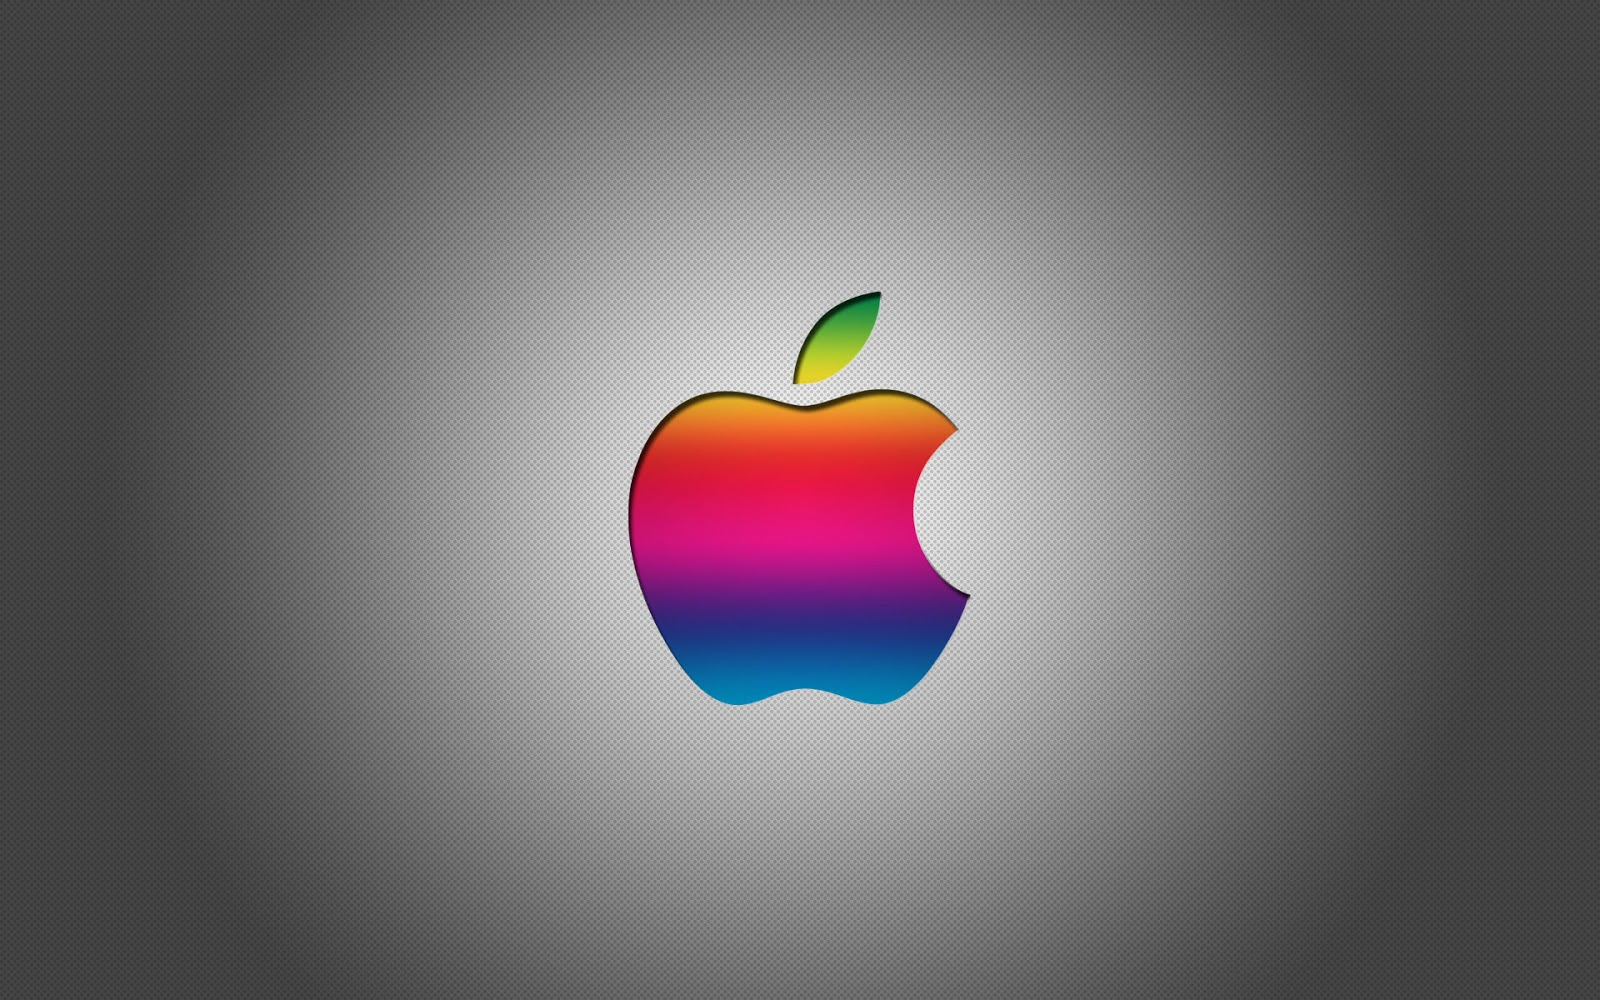 apple hd wallpaper downloads free - wallpapersafari